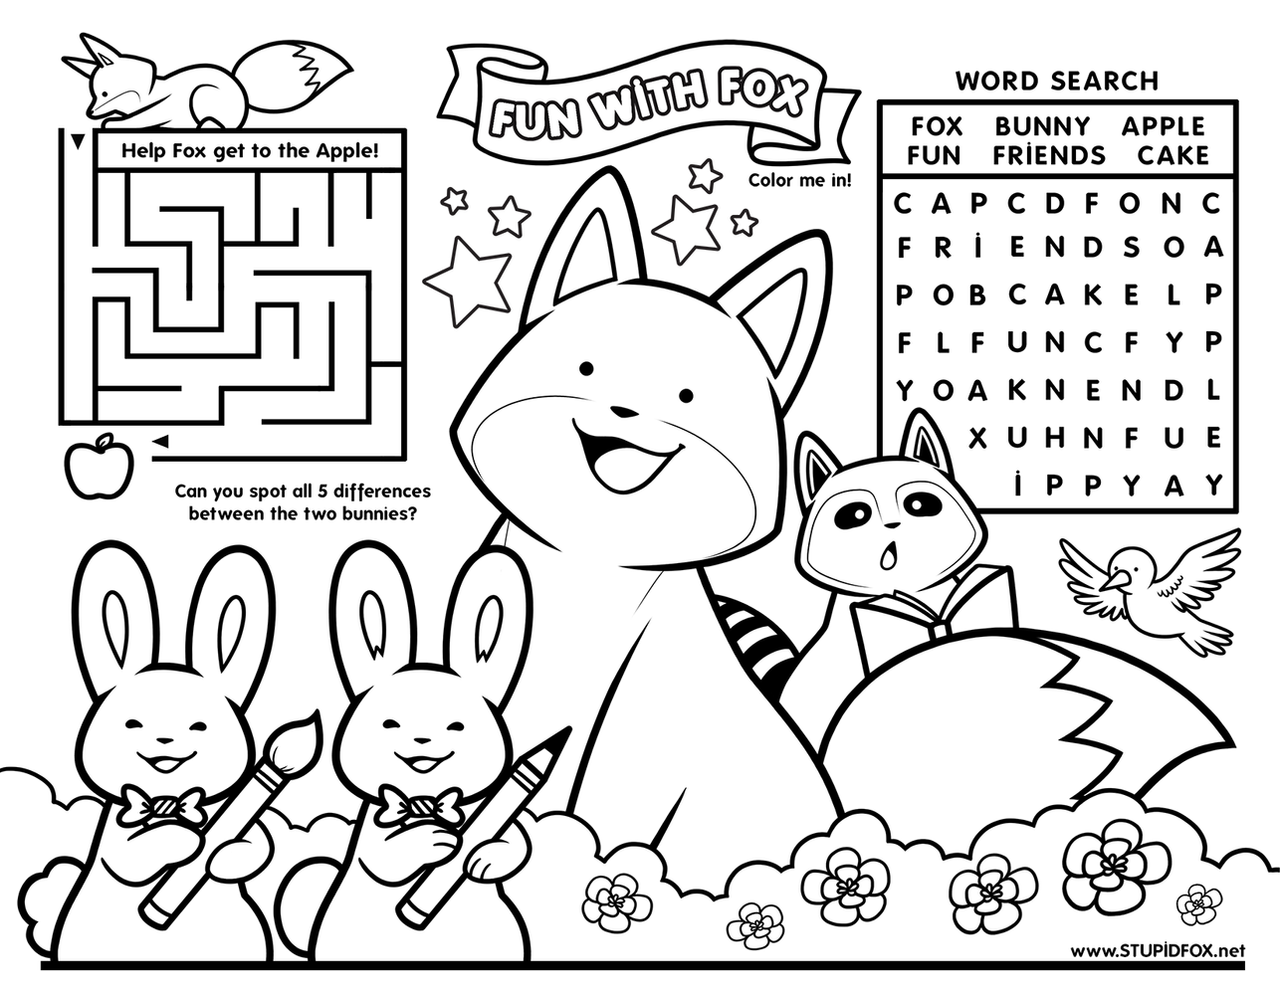 Fun with StupidFox - Placemat by SilentReaper on DeviantArt